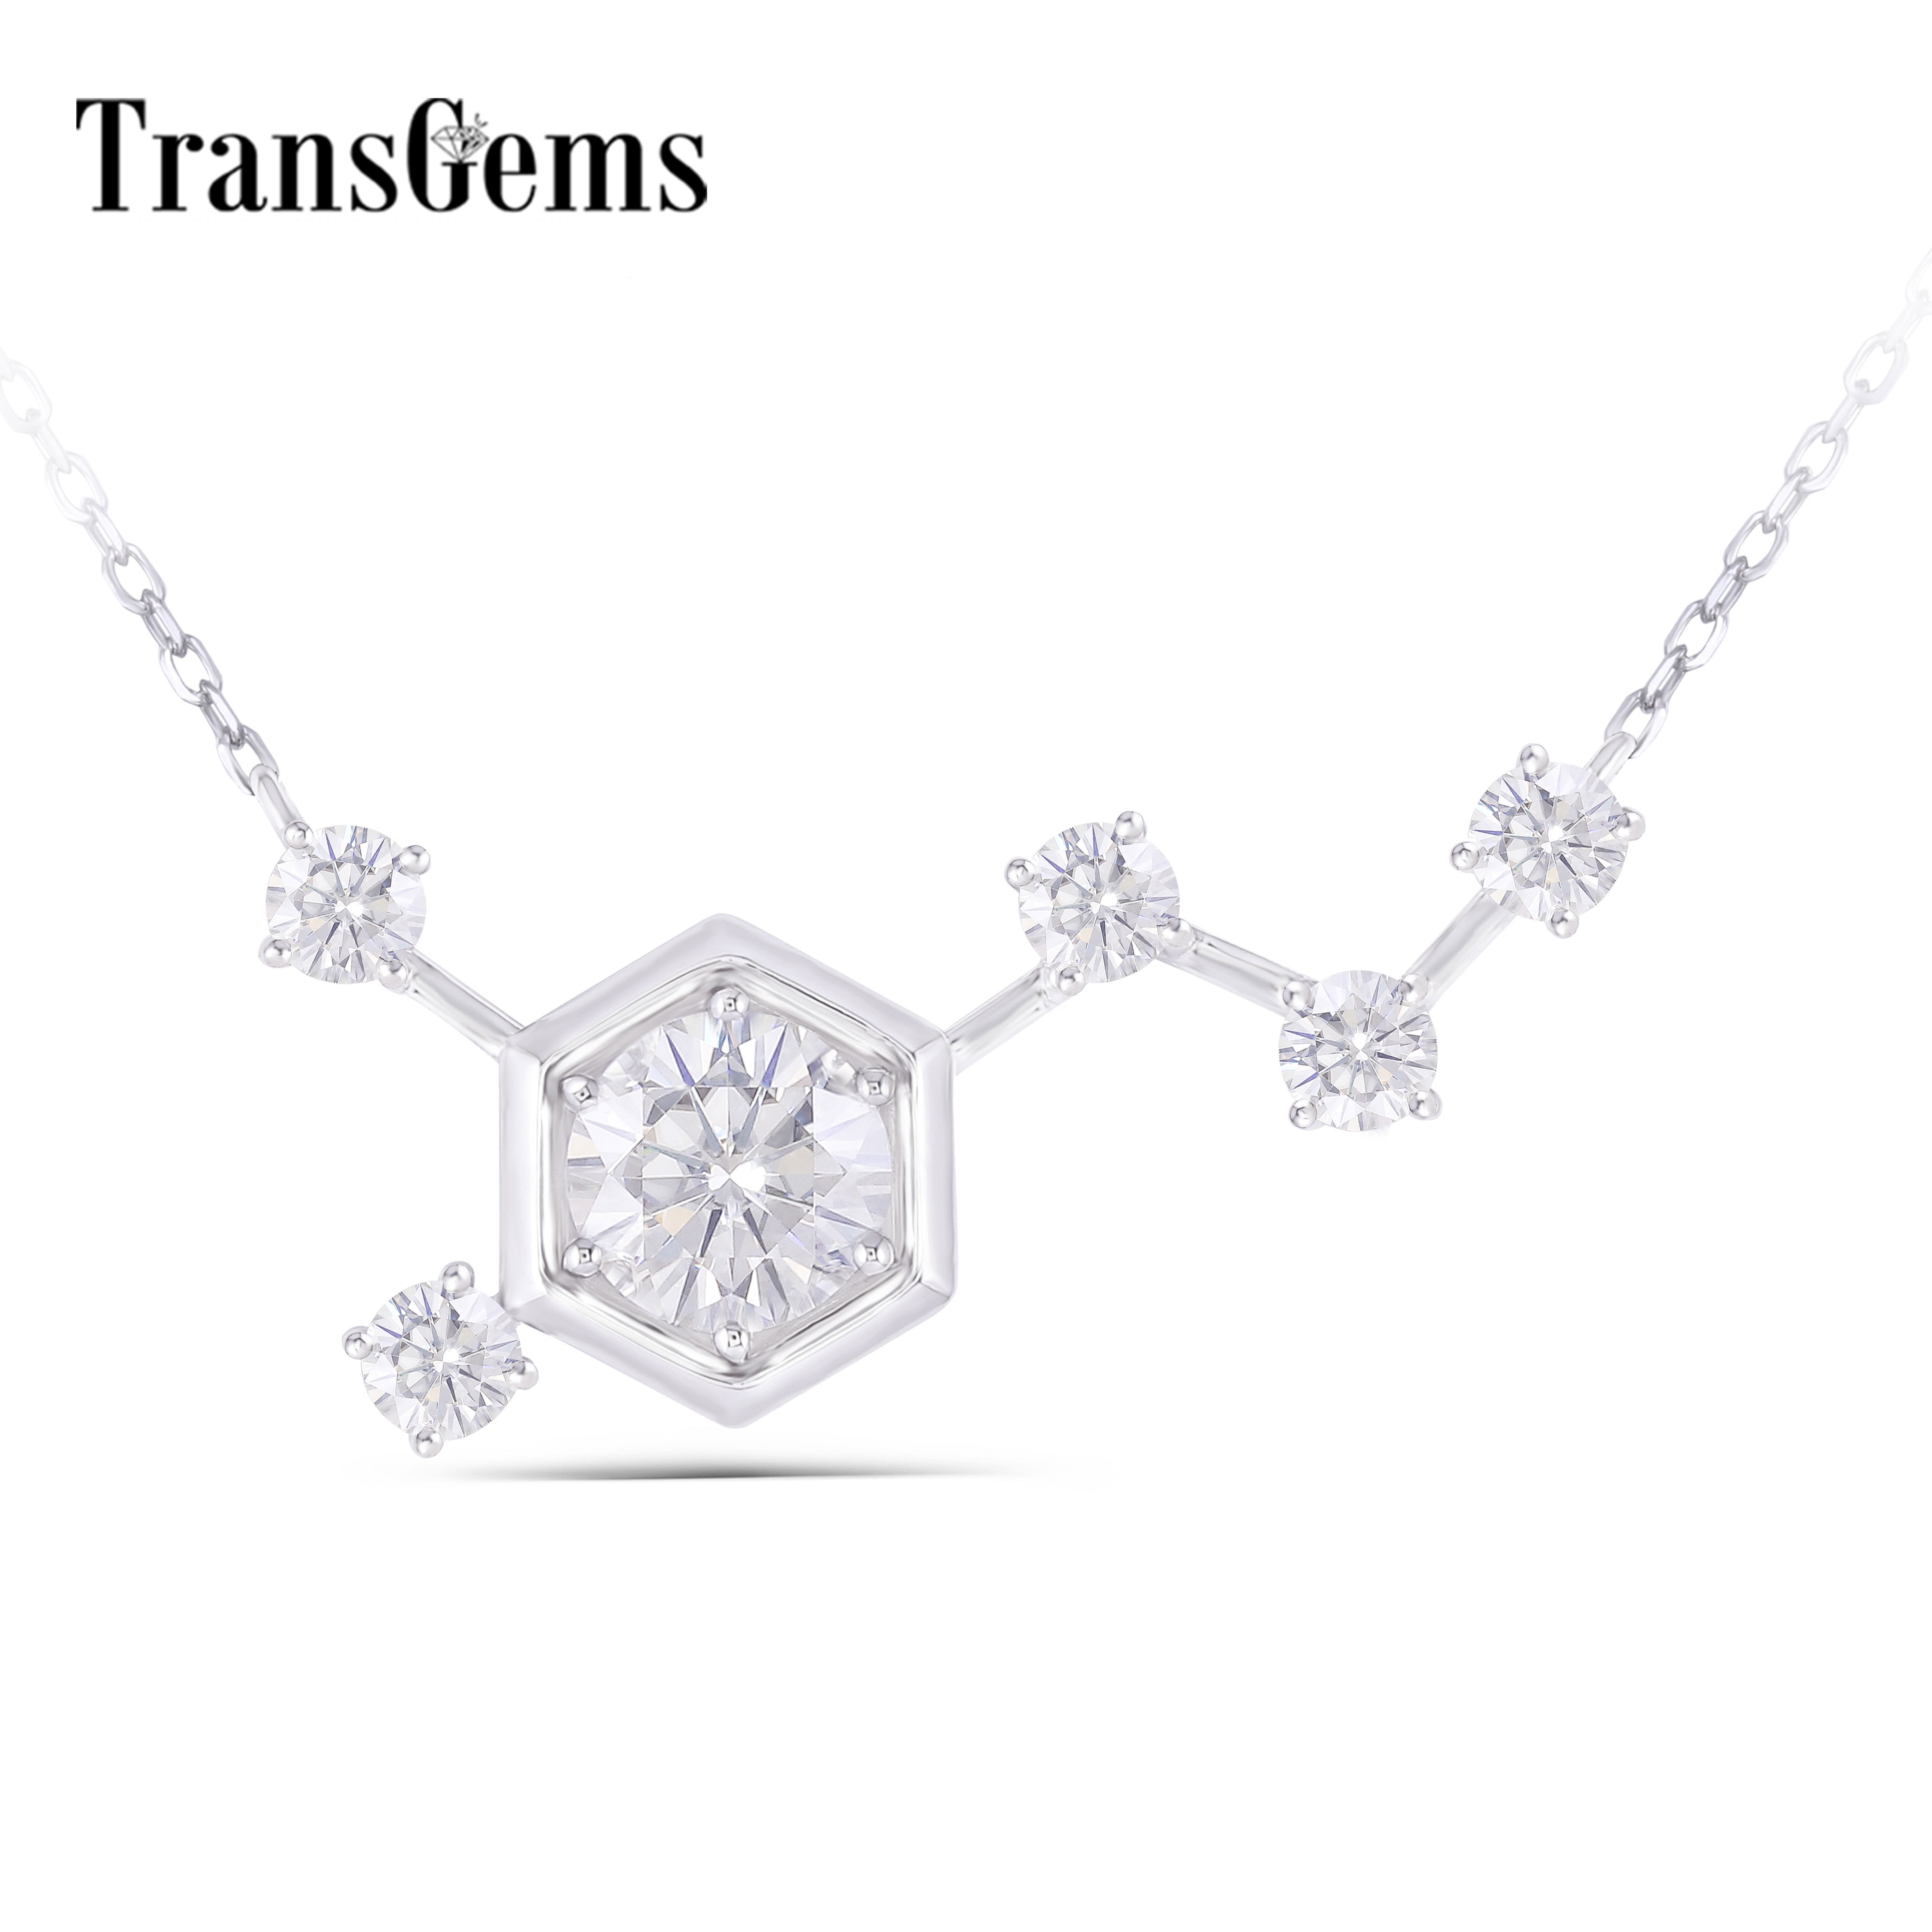 Transgems 14K White Gold Center 6 5mm 1ct F Colorless Moissanite Pendant Necklace With Accents For Women Anniversary Gifts in Pendants from Jewelry Accessories